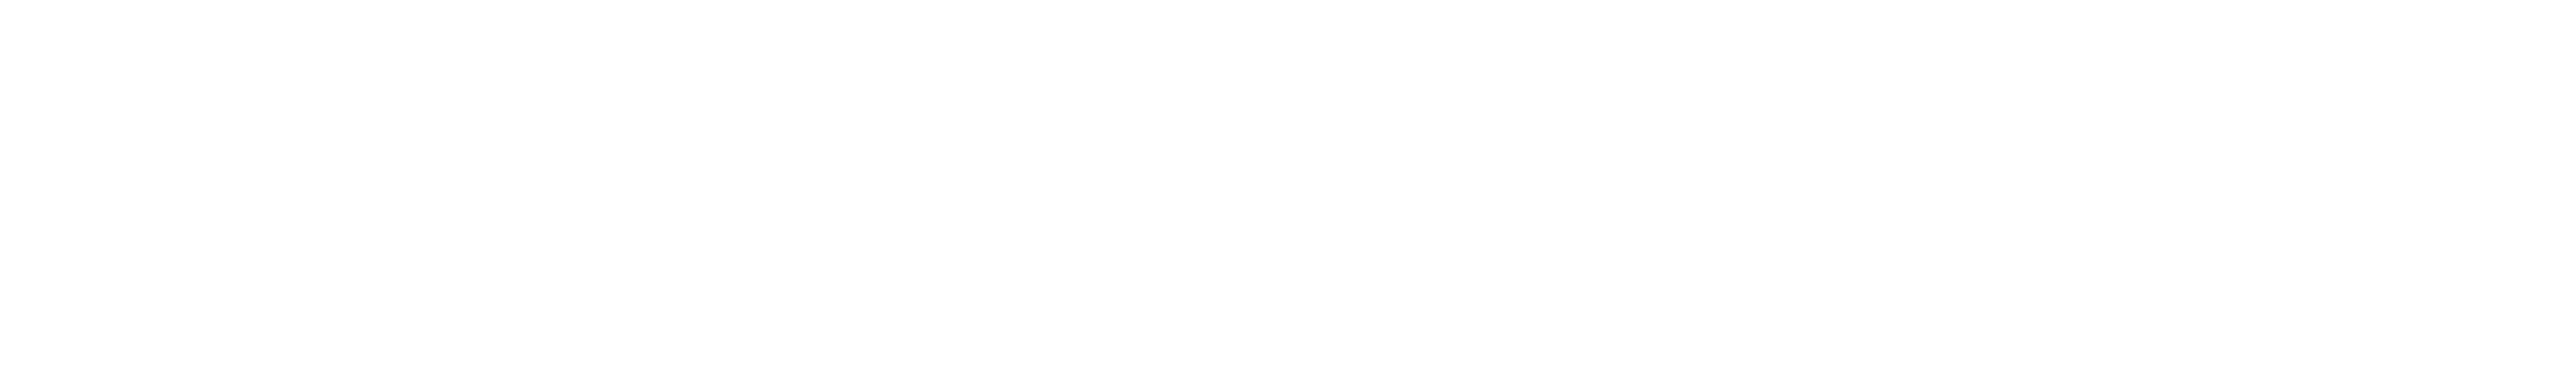 OpenView Logo White-1.png